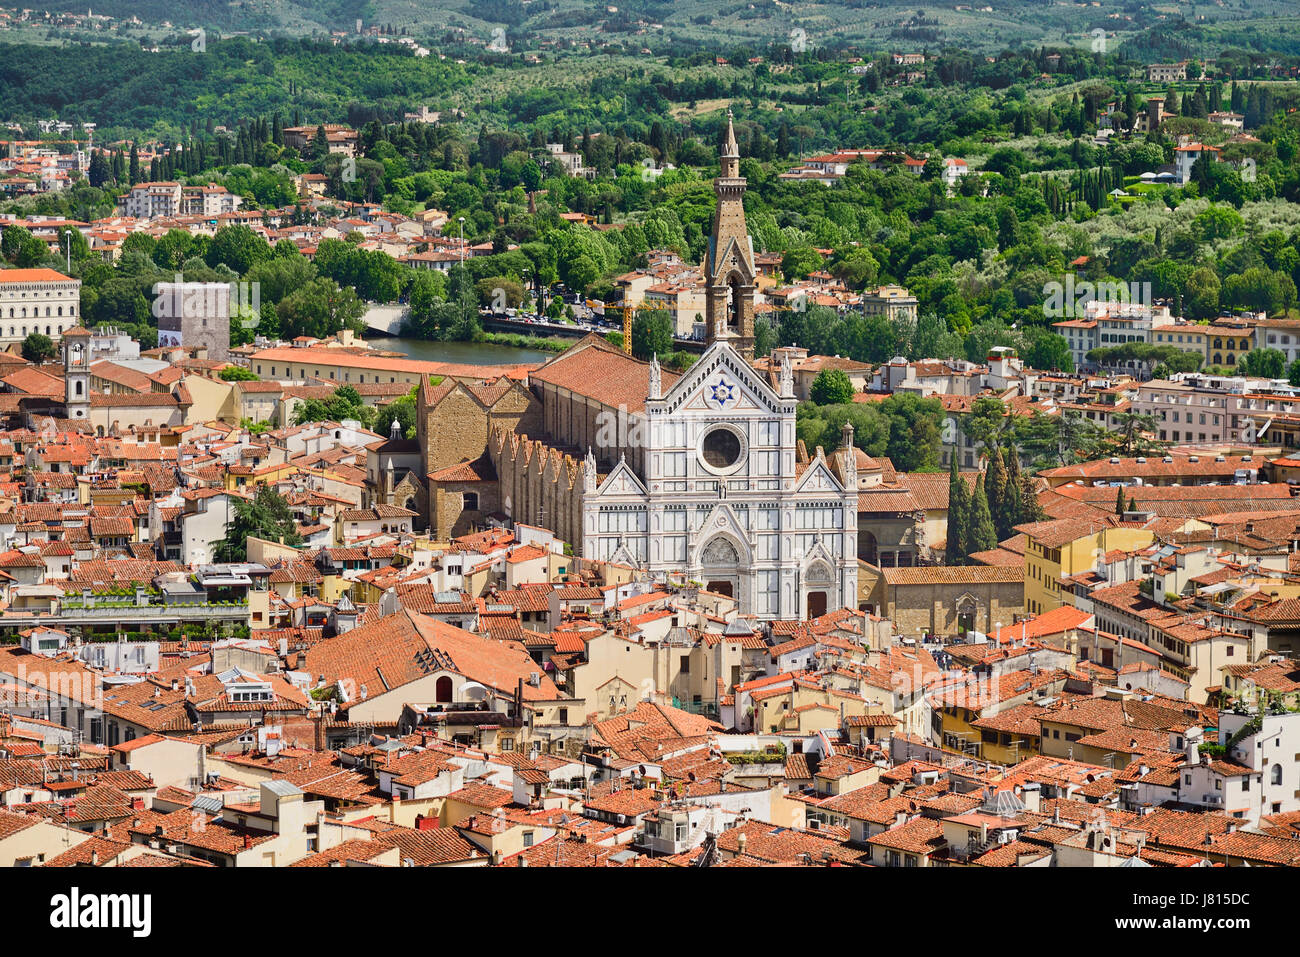 Italy, Tuscany, Florence, The 19th century marble facade of the 13th century Gothic church of Santa Croce containing - Stock Image